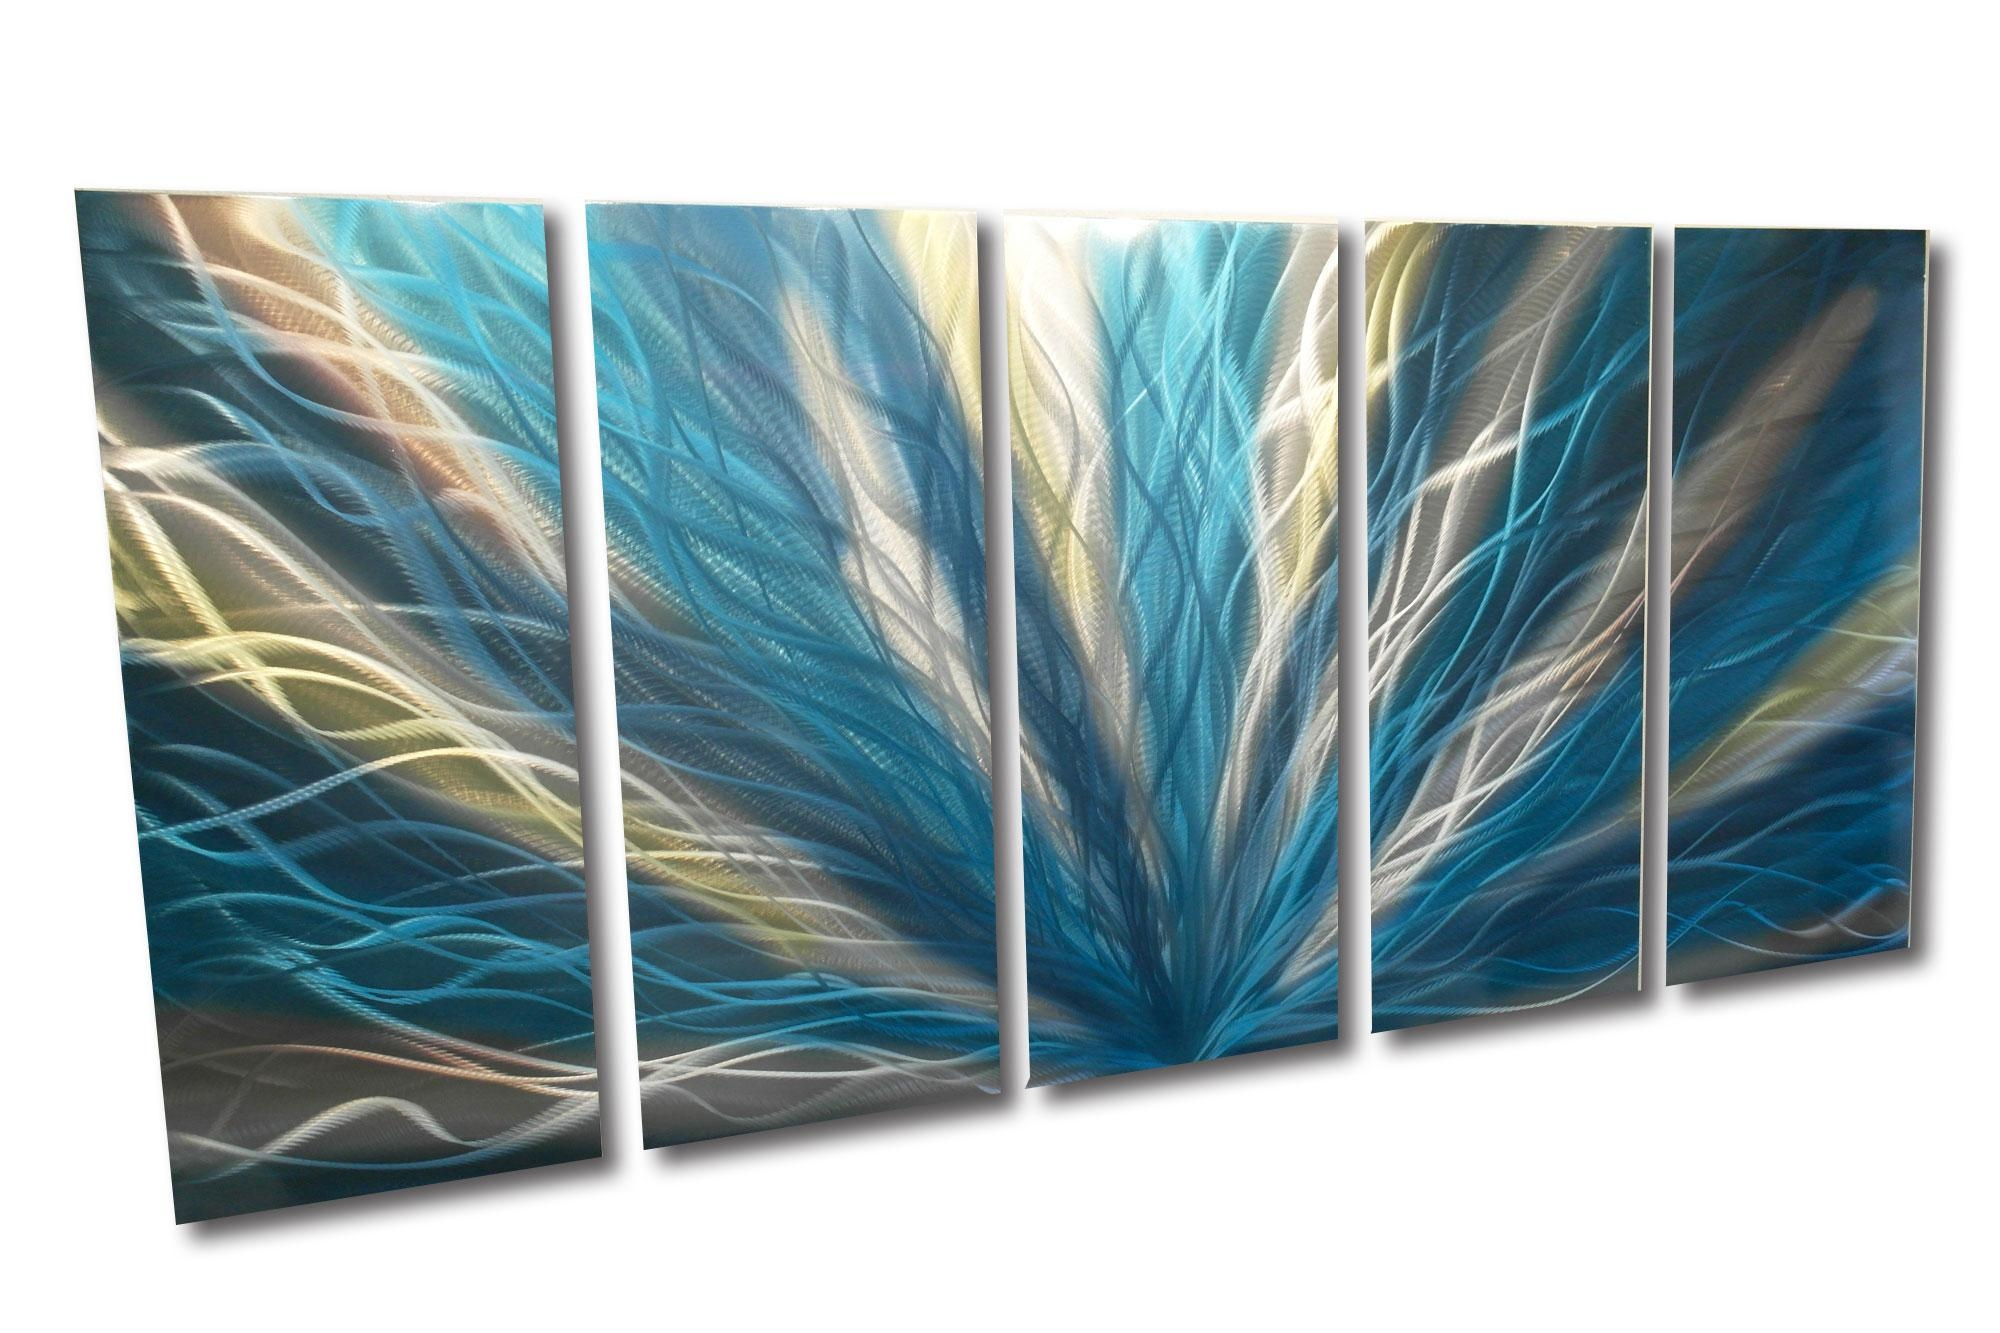 Radiance Teal 36X79 – Metal Wall Art Abstract Sculpture Modern Intended For Turquoise Metal Wall Art (View 18 of 20)